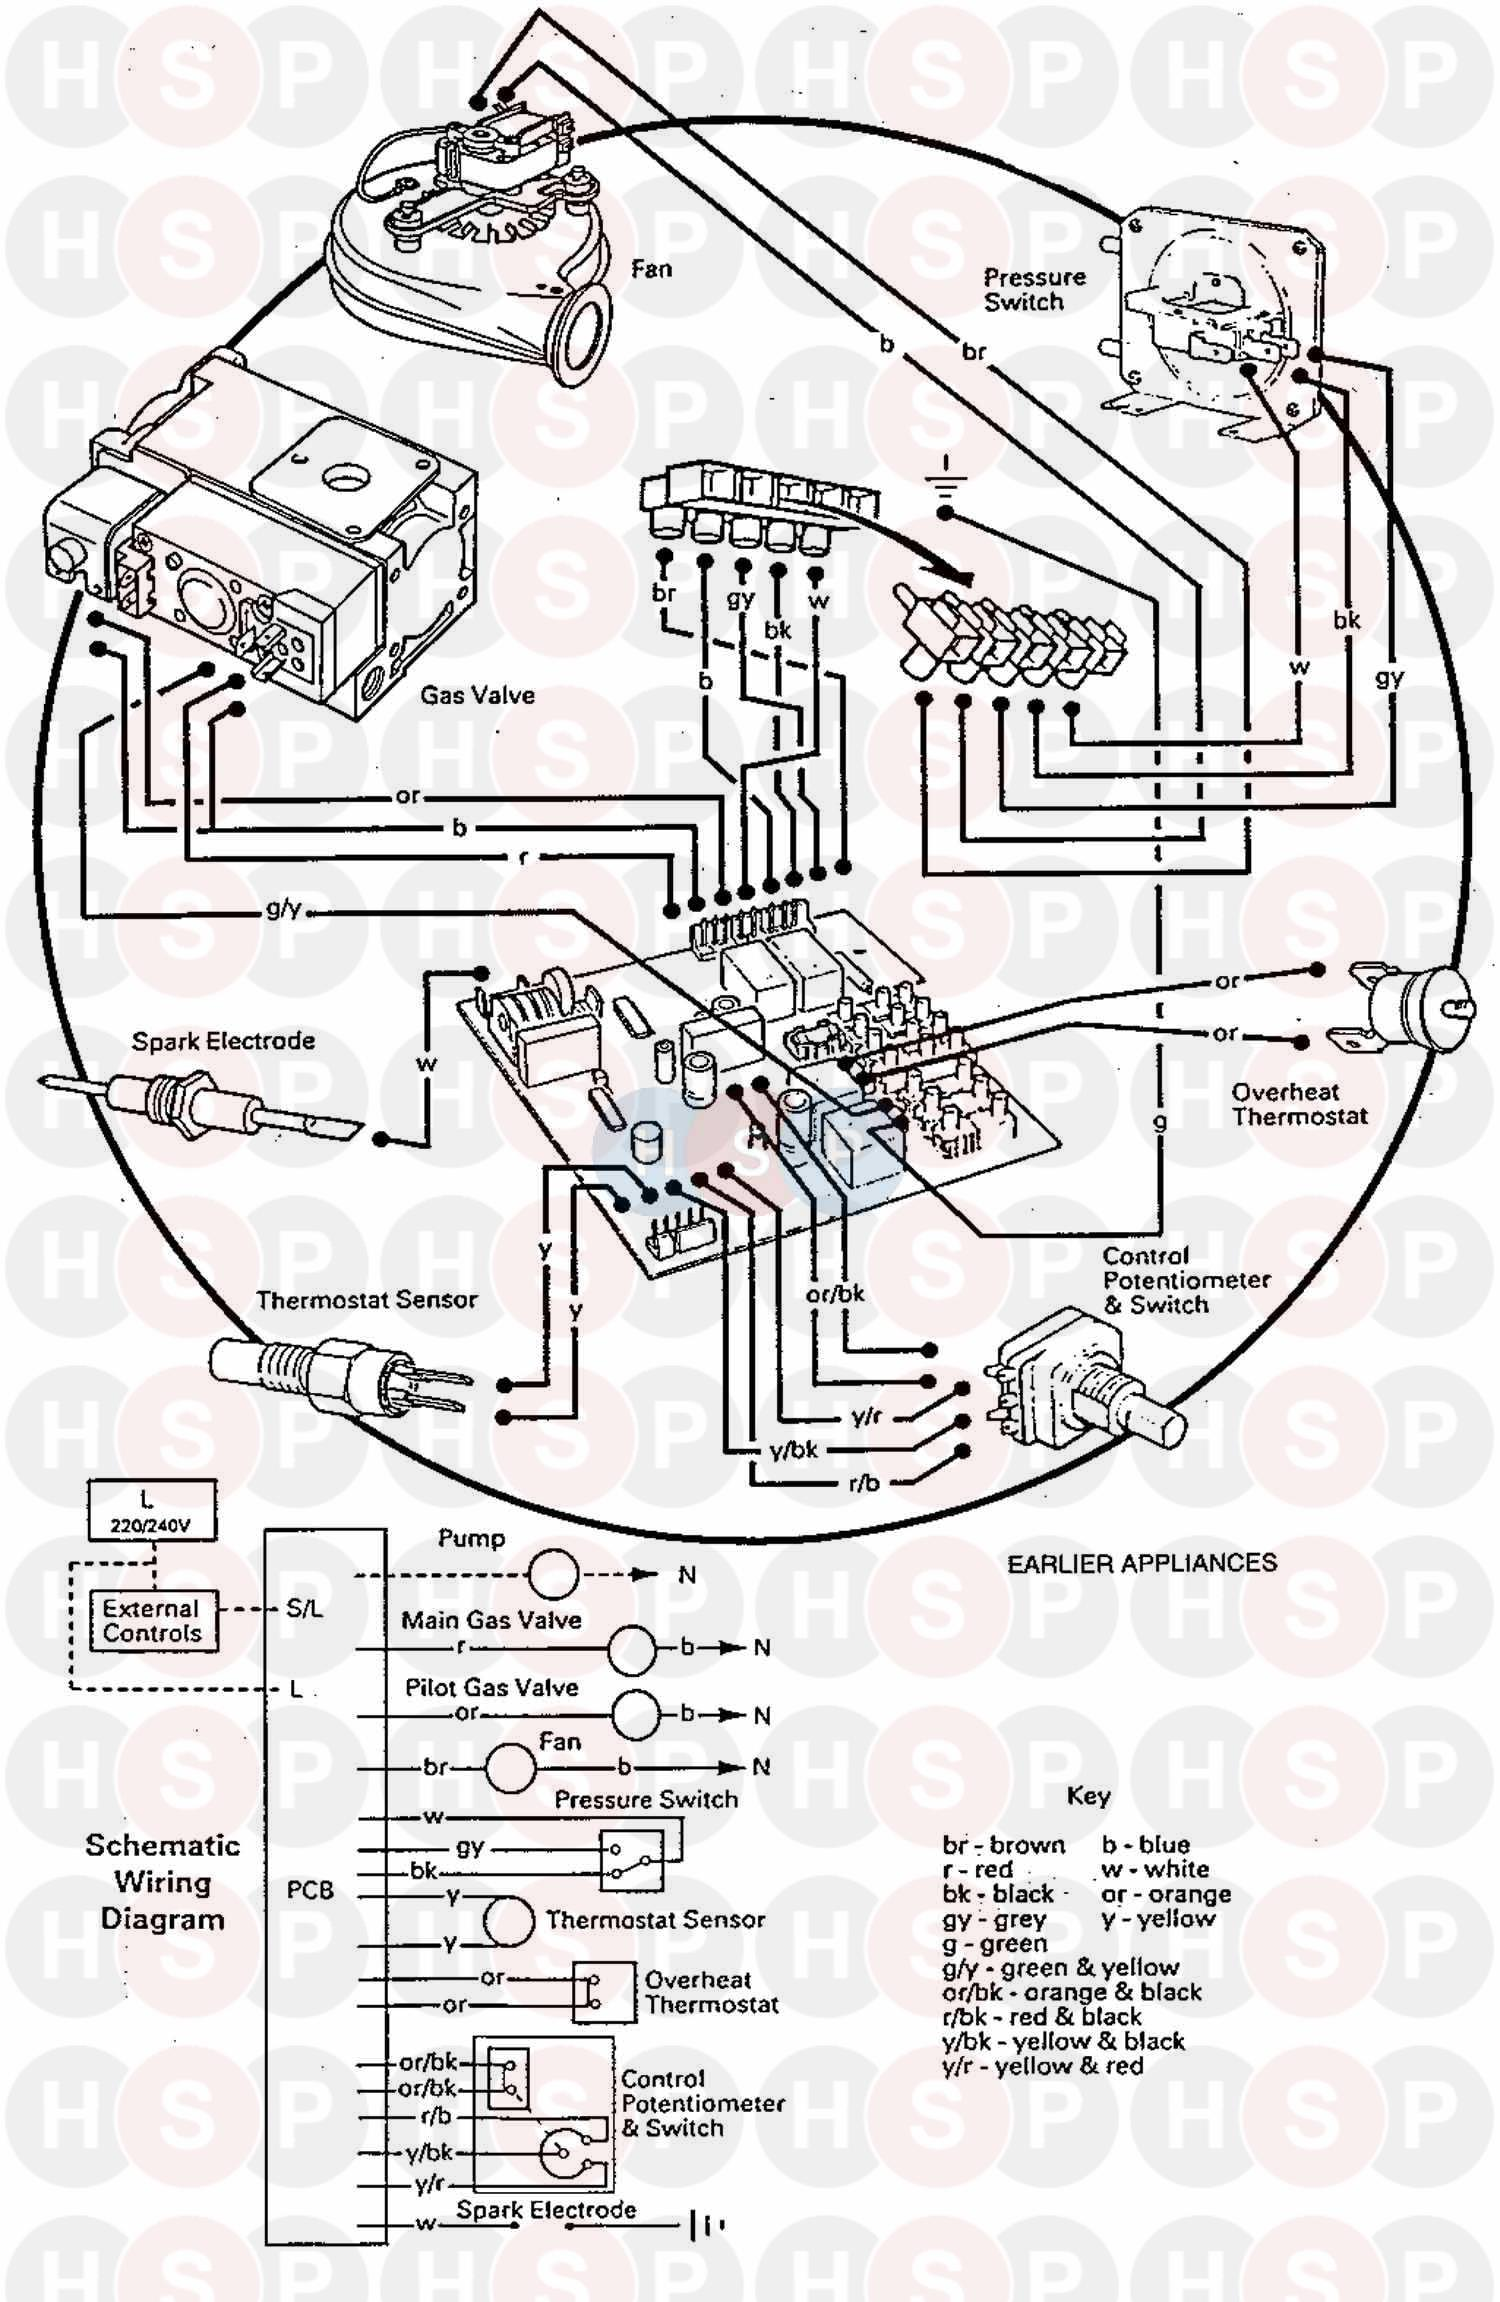 Baxi SOLO PF 2 60 Appliance Diagram (Wiring Diagram